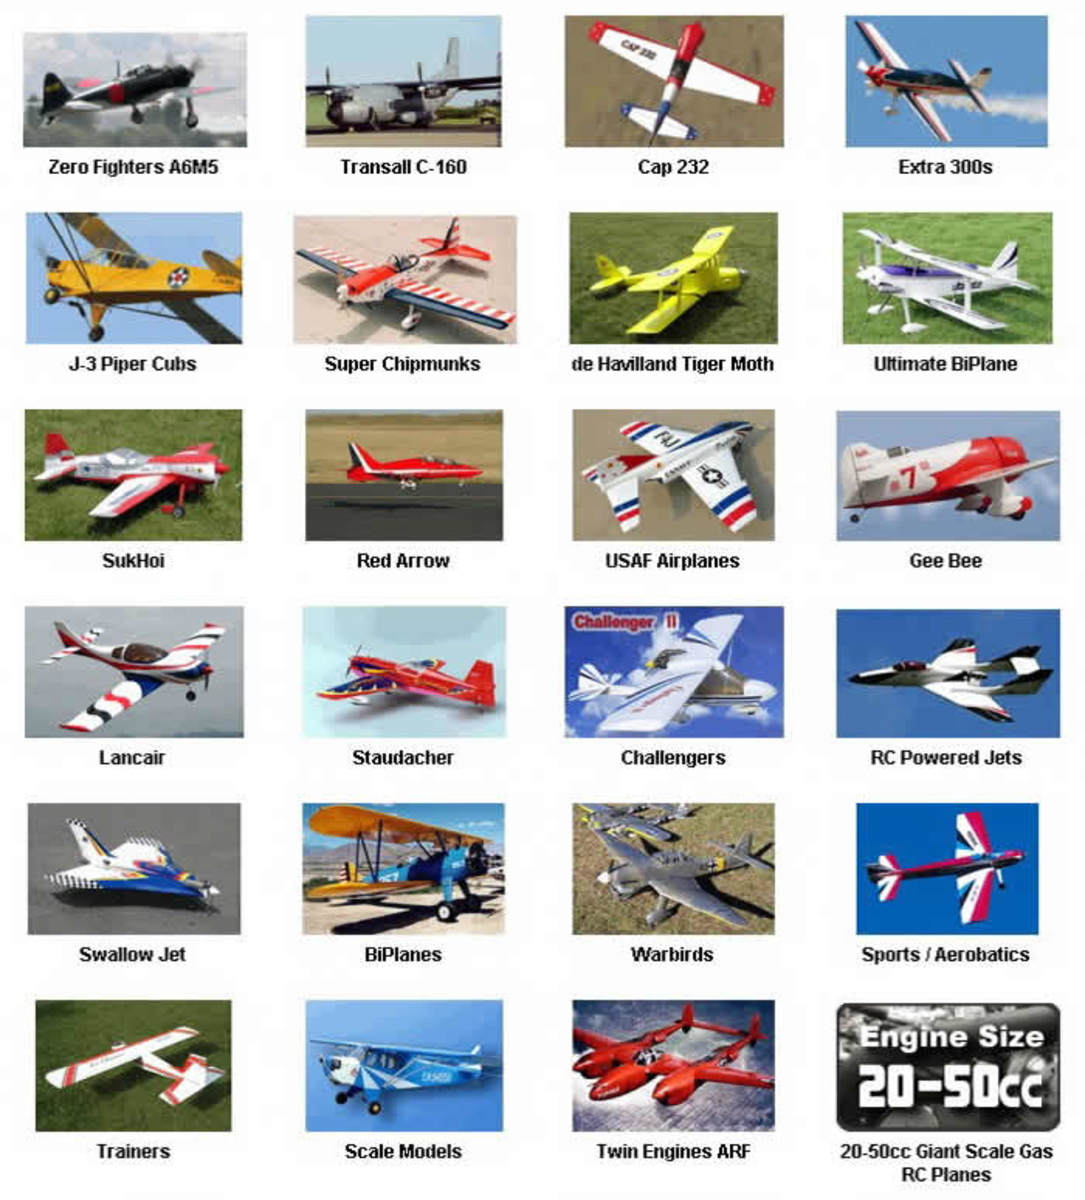 Latest RC planes - 2010 edition